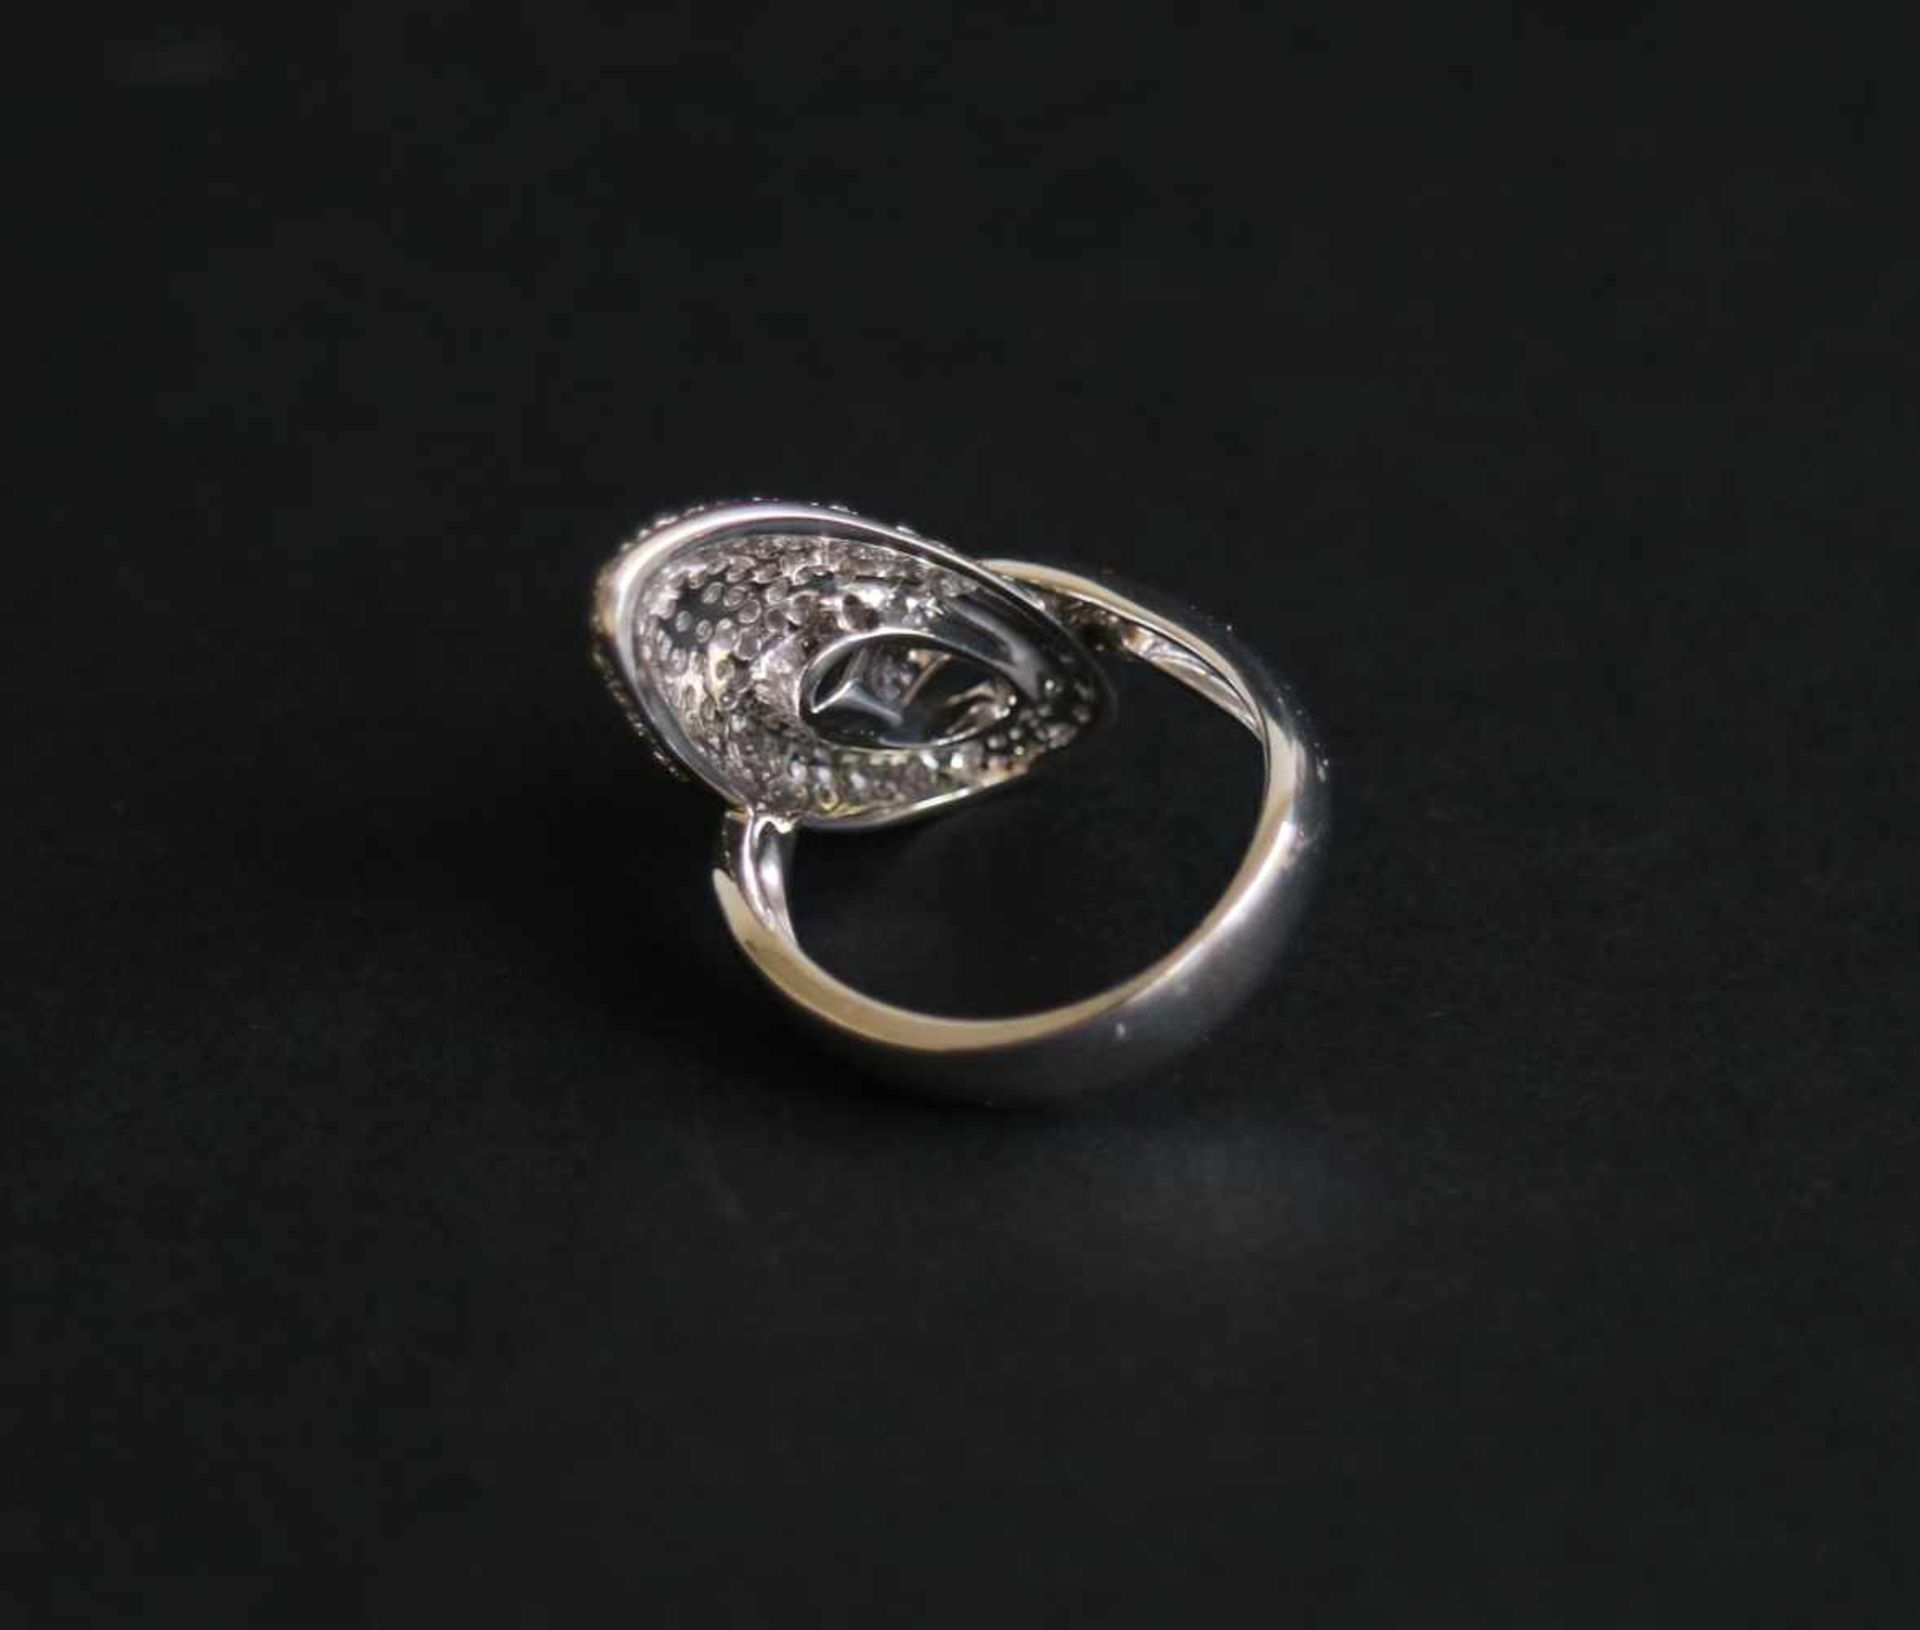 Los 947 - Ring white gold Innocence with diamond, 18Kt gold 8 gr